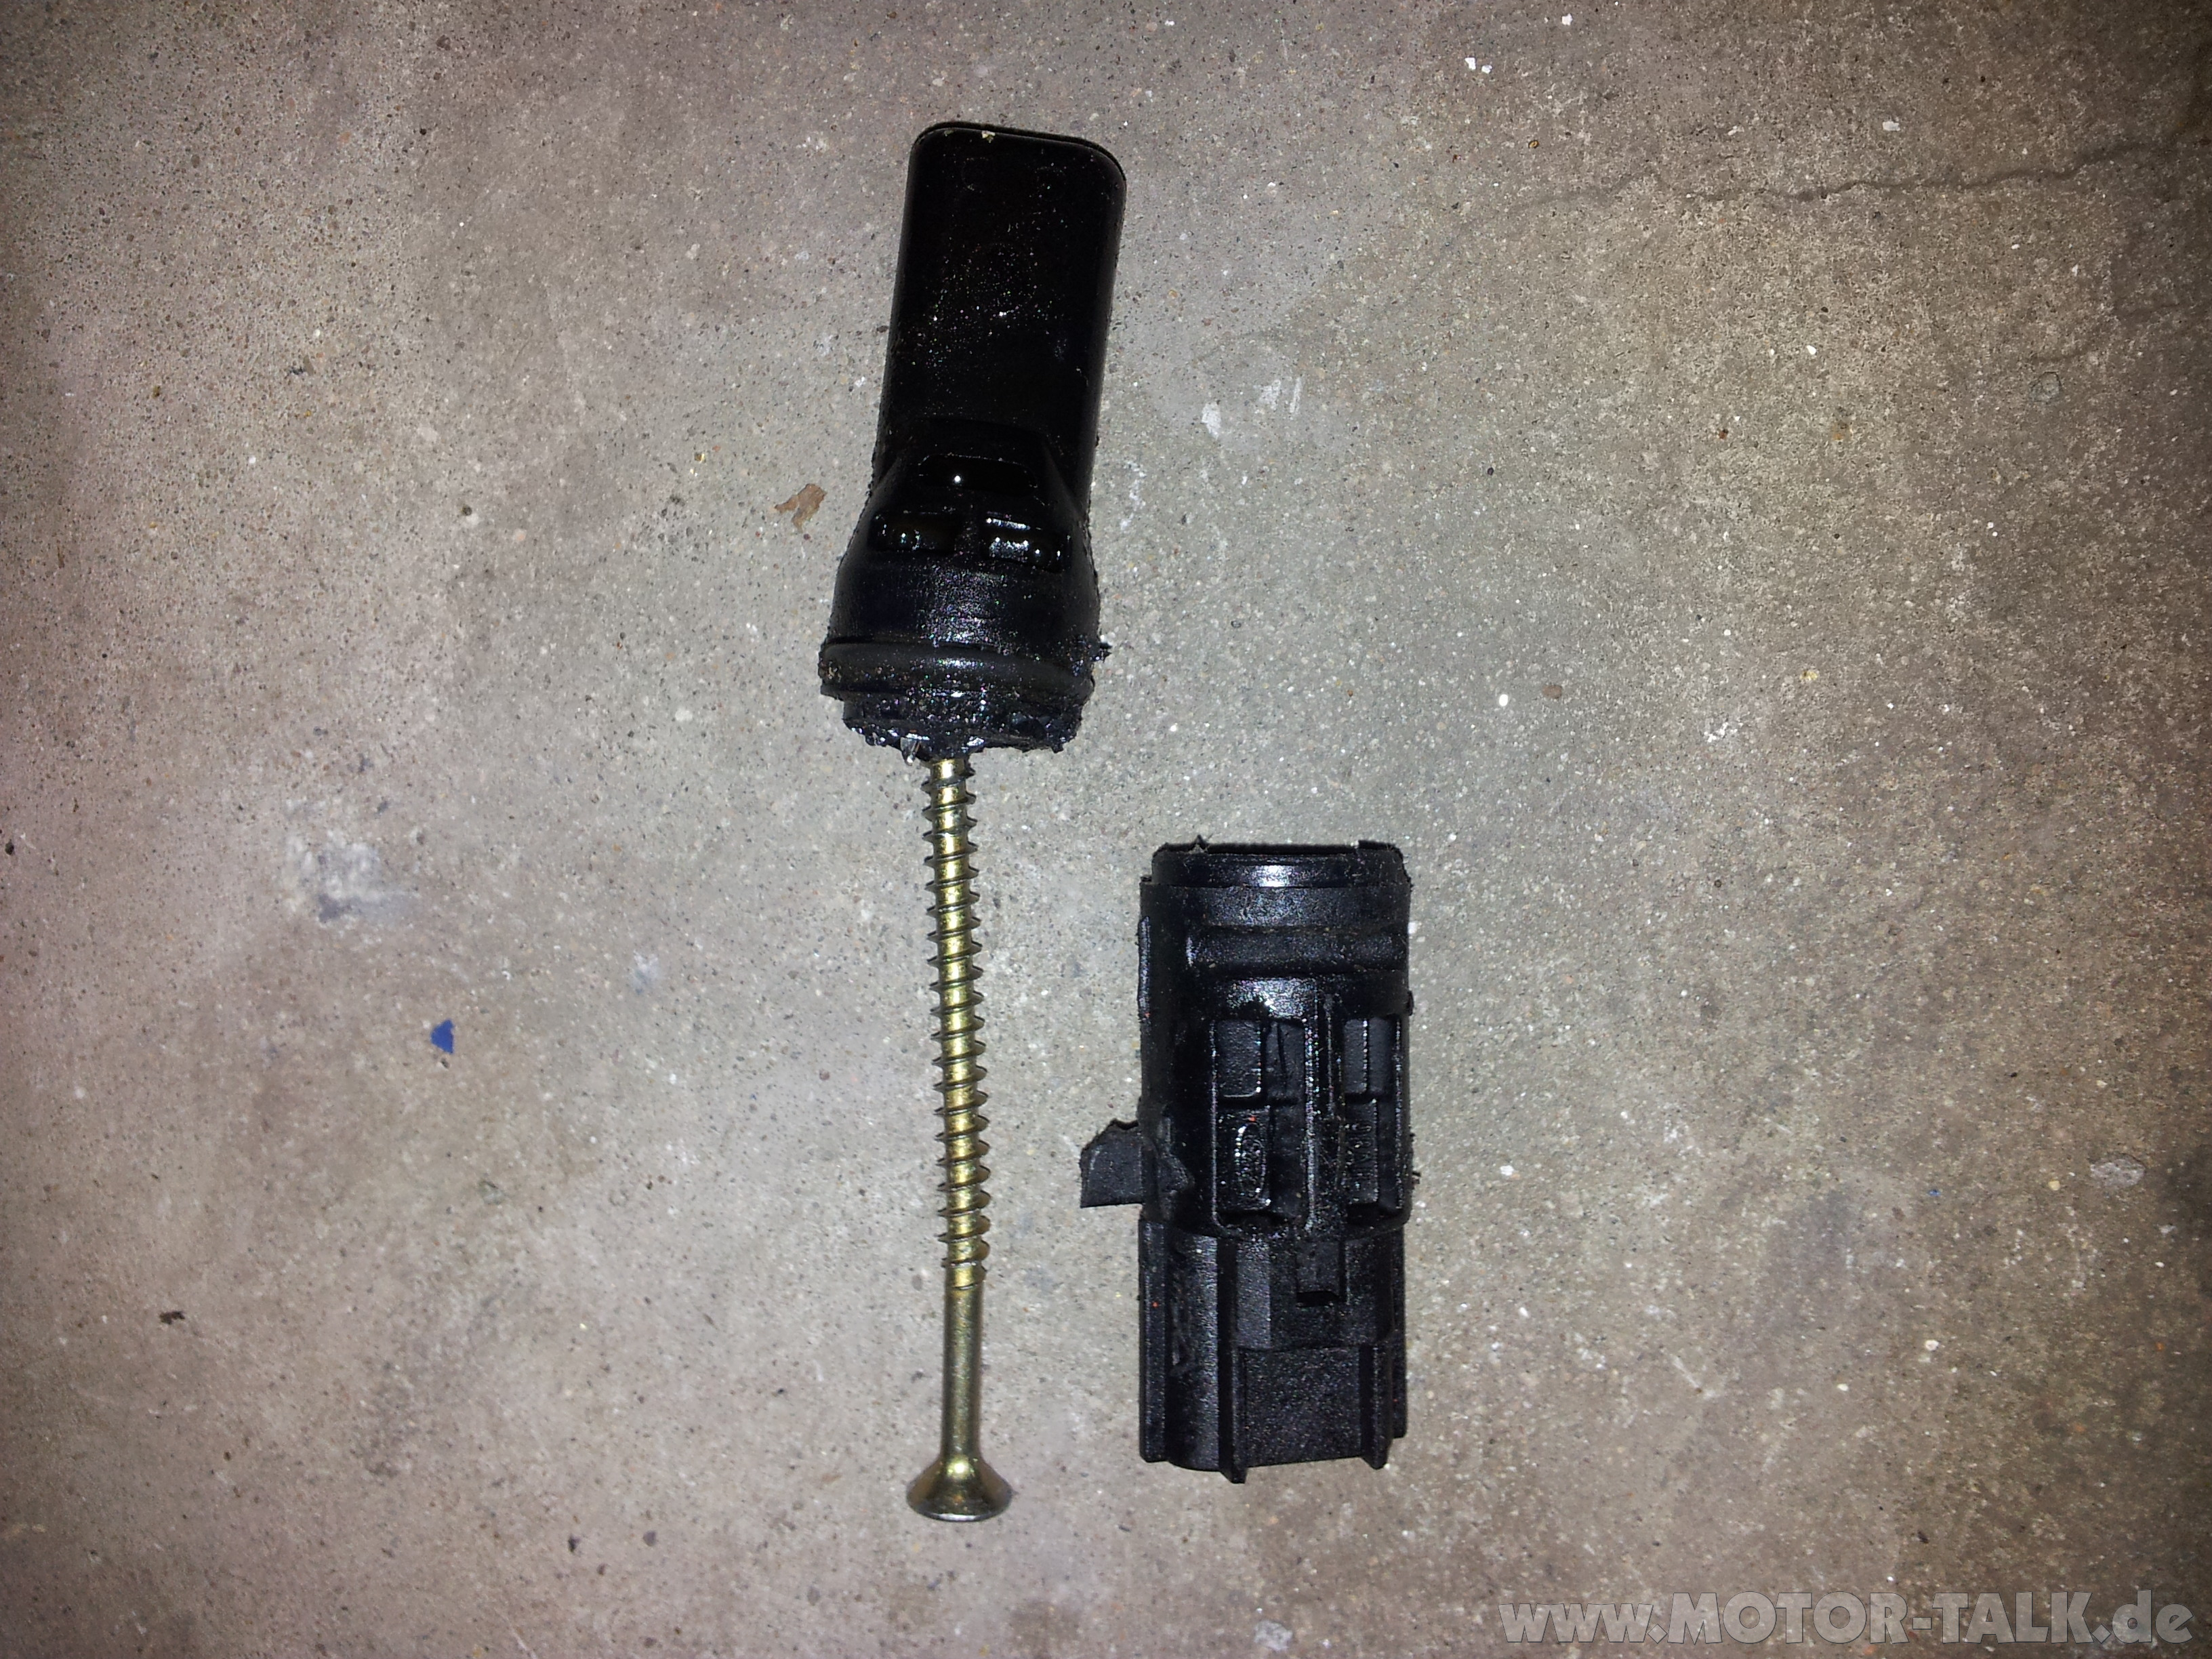 Speed Sensor Location 97 Ta a 168288 moreover 246678 Check Engine Code Po 440 Po 446 A also 537172 01 Flhri Oil Seap Around Transmission Area in addition Newbie Seeks Help With Coolant Leak T504 furthermore Passive Infrared Based Human Detection Alive Robot. on vss sensor